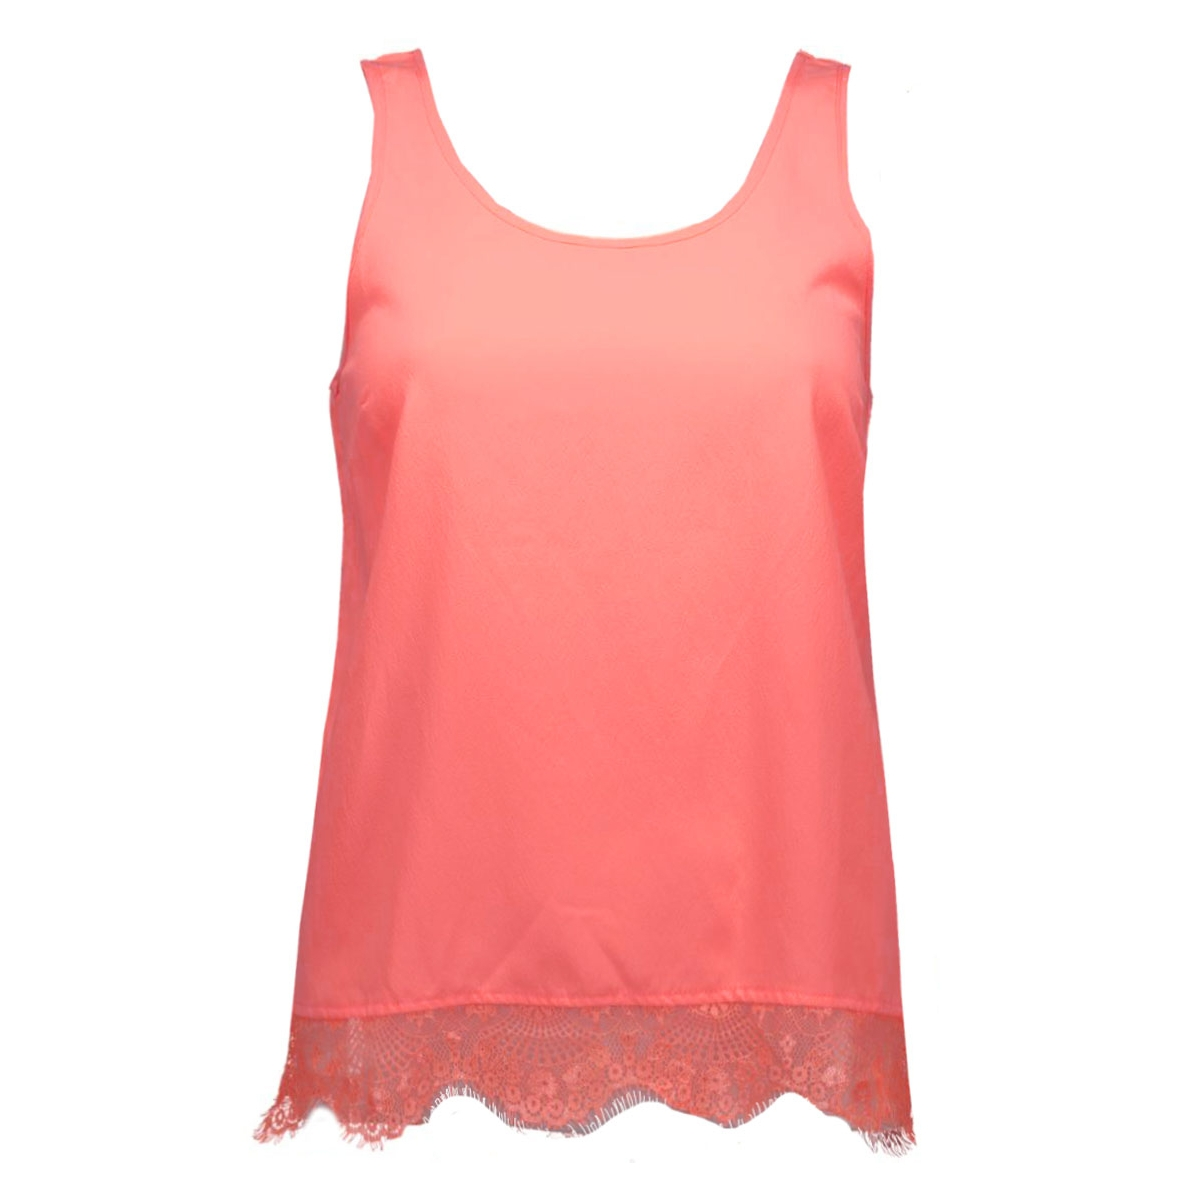 nmmena minna s/l top 10156611 noisy may top fiery coral